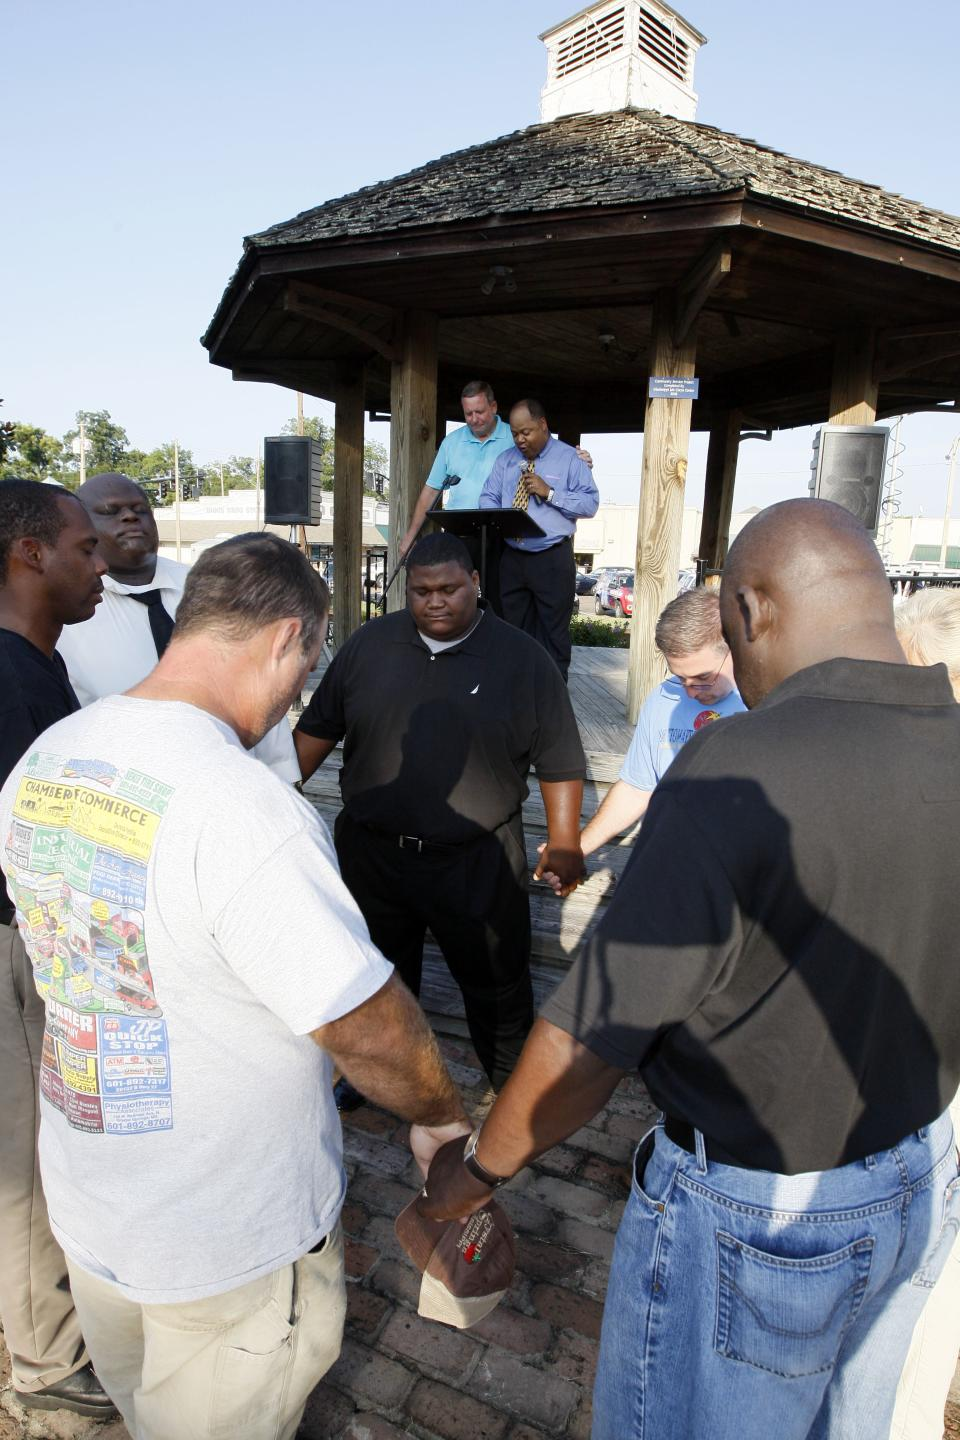 Crystal Springs, Miss., civic and religious leaders gather at the town square for a prayer rally in support of racial reconciliation Monday, July 30, 2012 following the actions of some congregants at the First Baptist Church which prevented a black couple from getting married there. (AP Photo/Rogelio V. Solis)